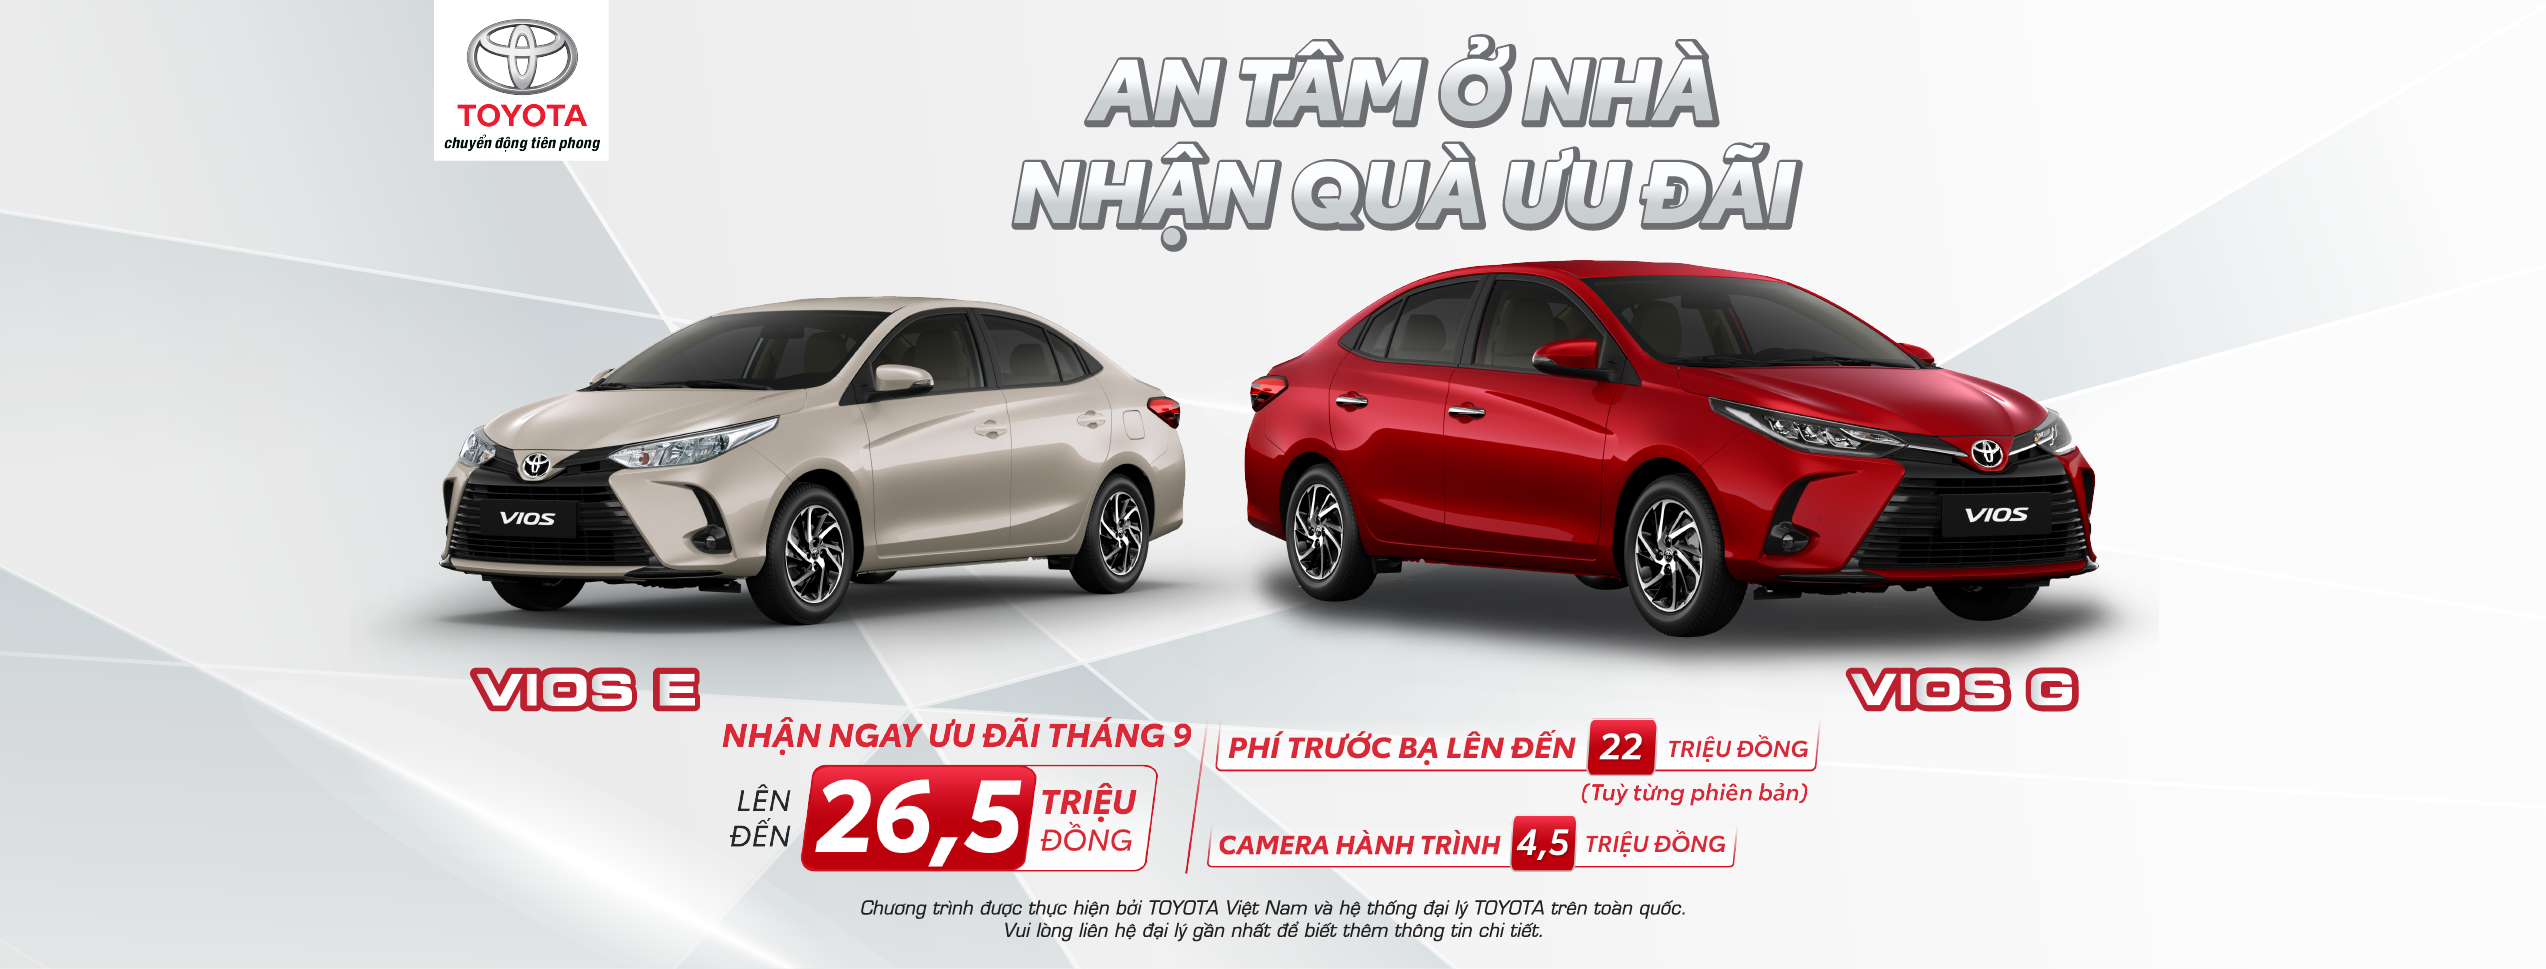 http://toyotagiaiphong.net.vn/uploads/images/banner/khuyen-mai-xe-toyota-vios-thang-9.png